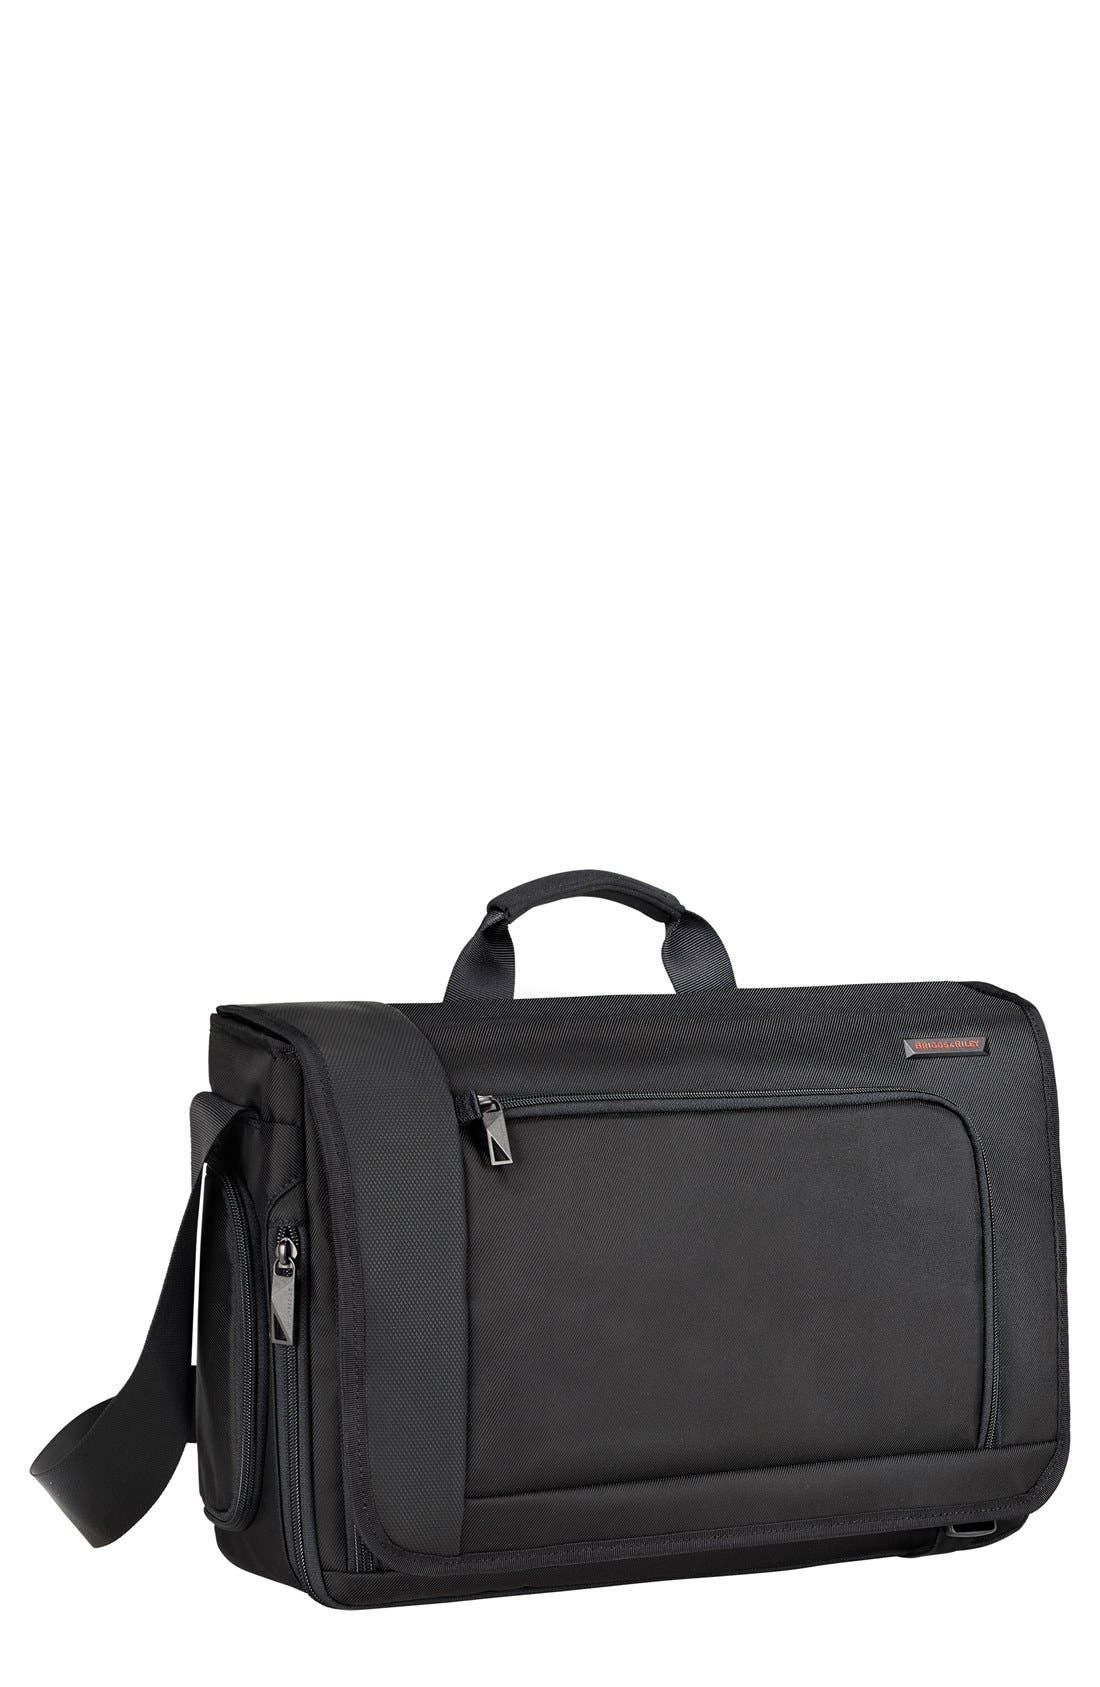 'Verb - Dispatch' Messenger Bag,                             Main thumbnail 1, color,                             BLACK